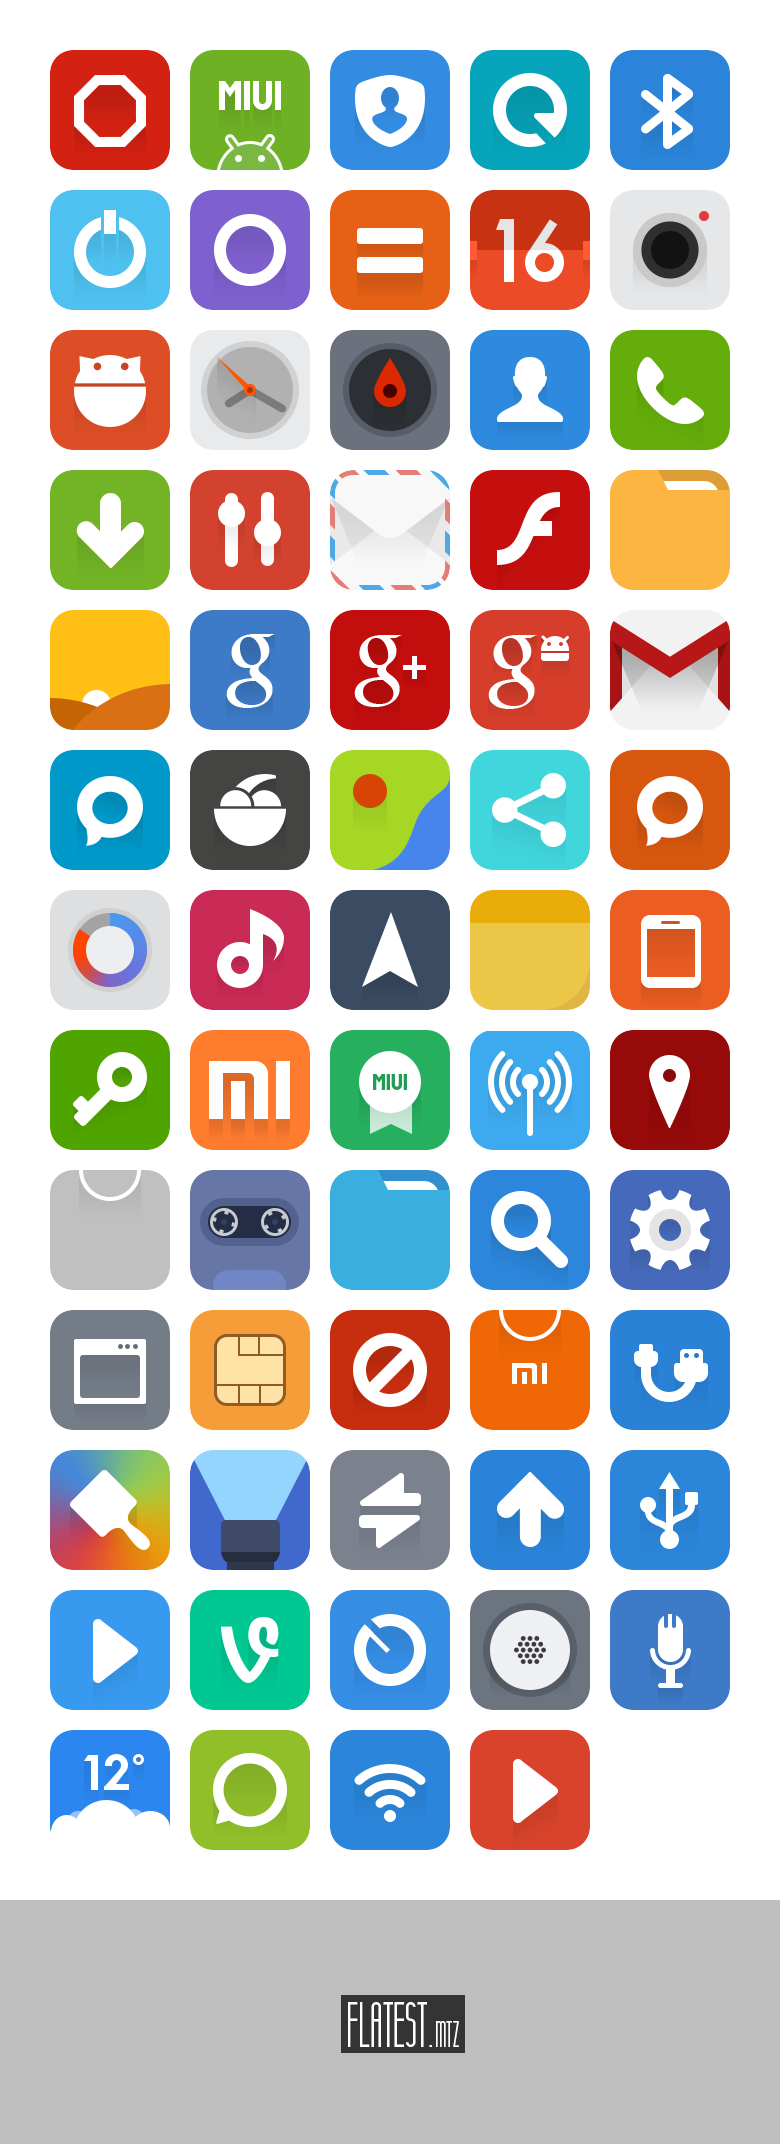 Flatest Icons Miui Theme Psd By Ffra On Deviantart